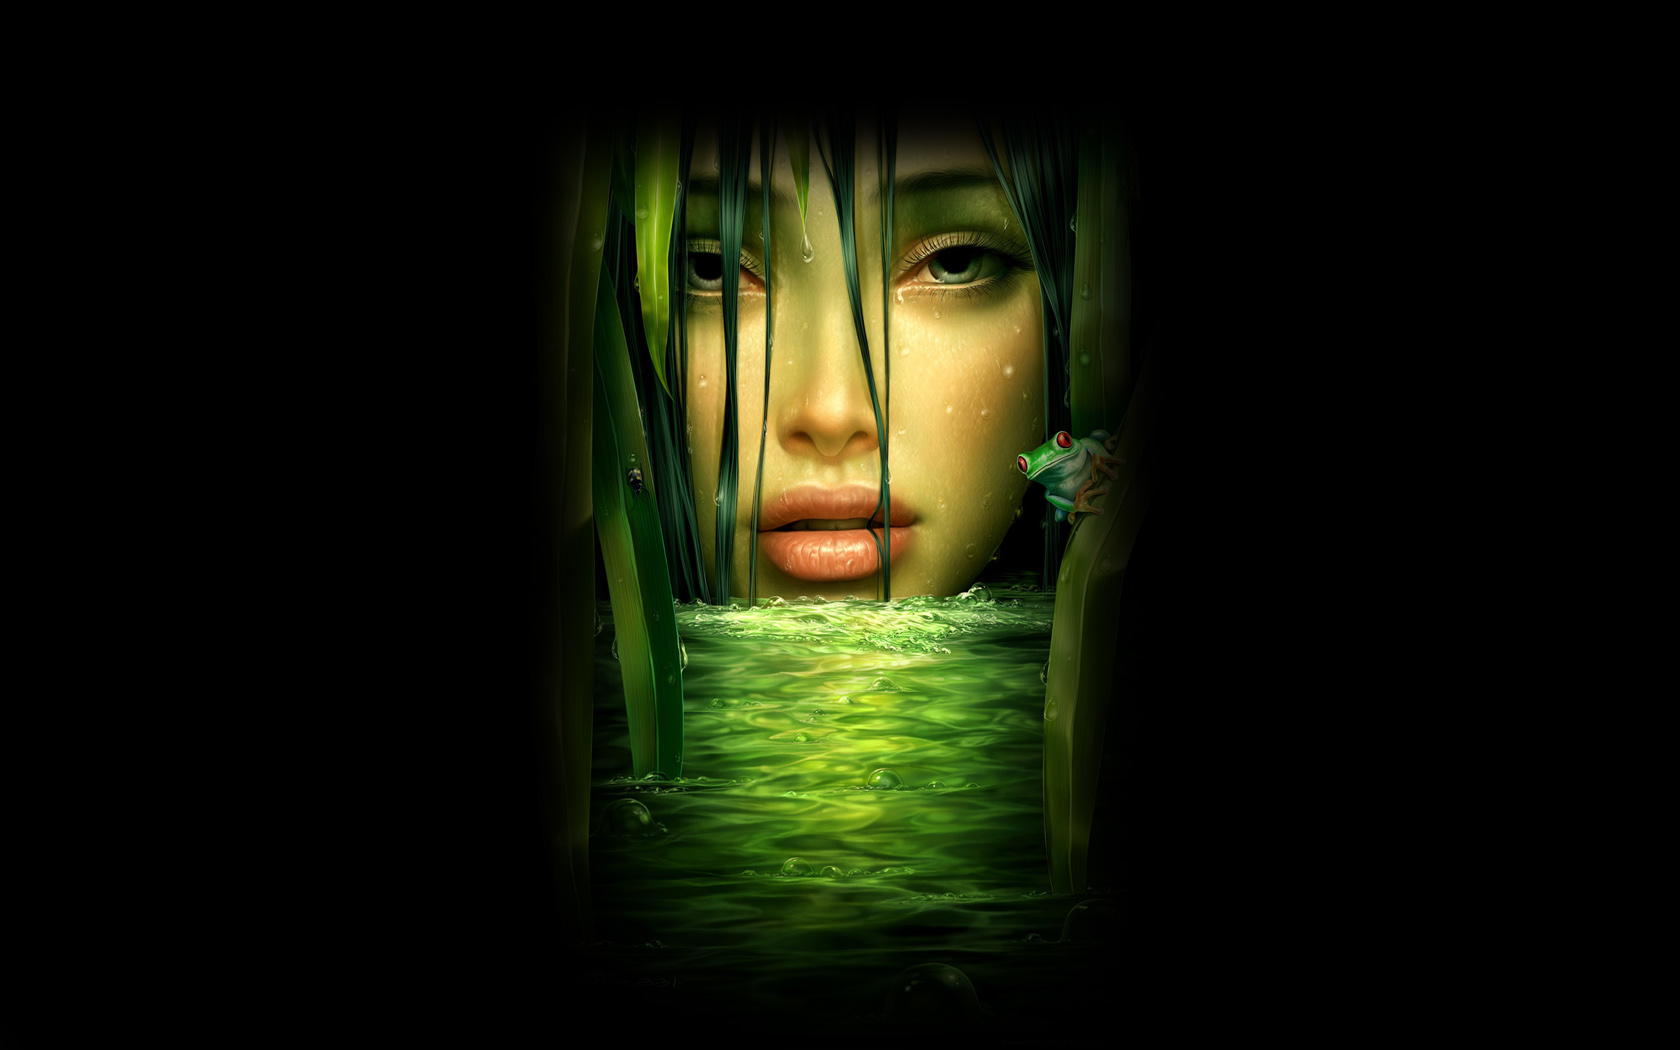 Beautiful Green Girl Face on Black Background   Wallpaper 32818 1680x1050